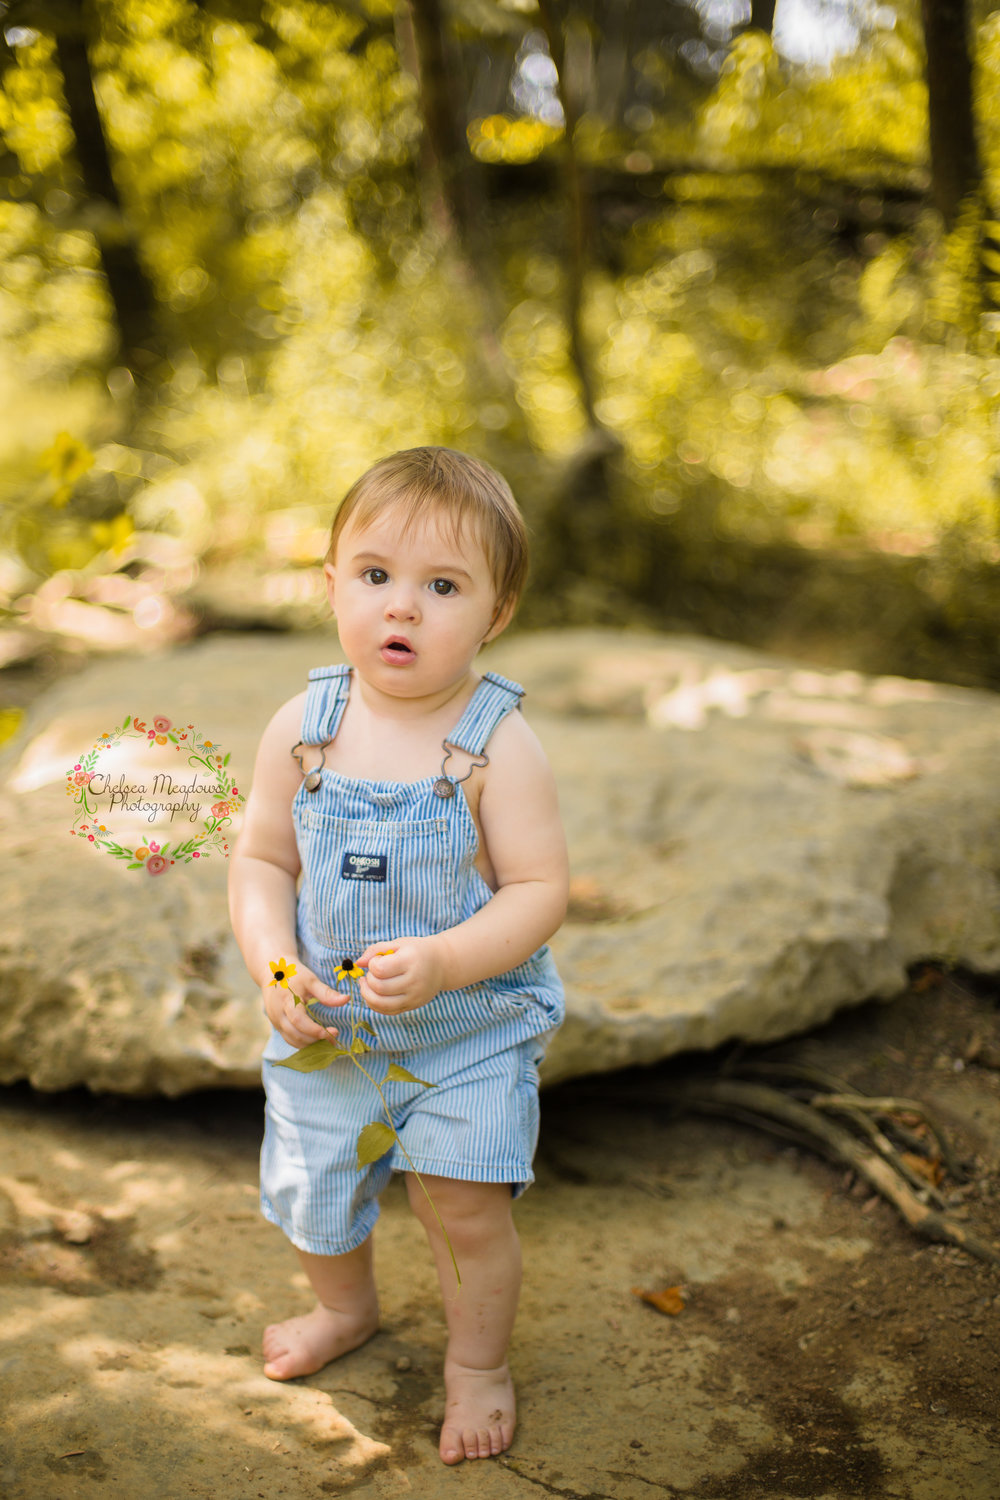 Rowans First Birthday - Nashville Family Photographer - Chelsea Meadows Photography (26).jpg